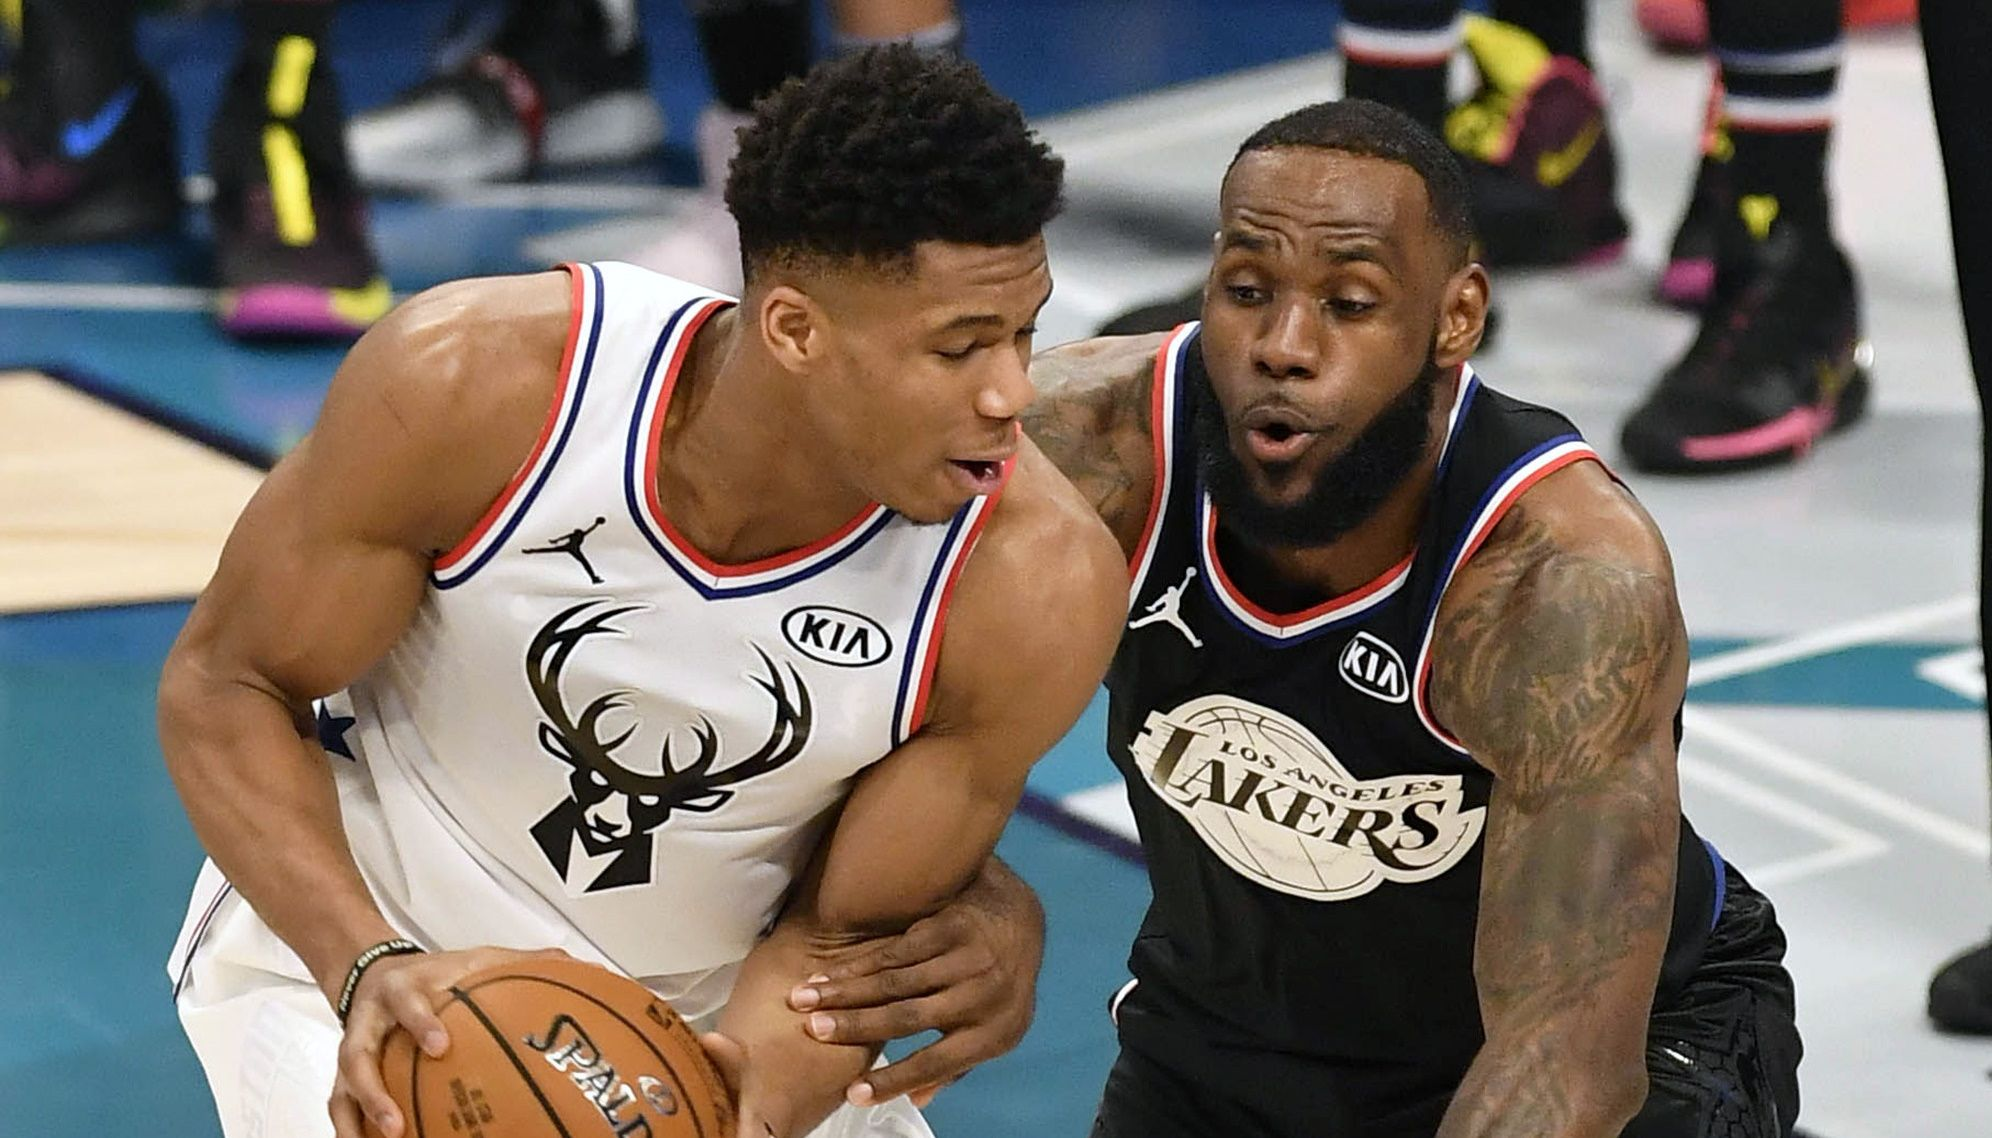 Nba All Star Game 2020 Live Stream How To Watch Team Lebron Vs Team Giannis From Anywhere Tonight In 2020 All Star Gianni Nba League Pass